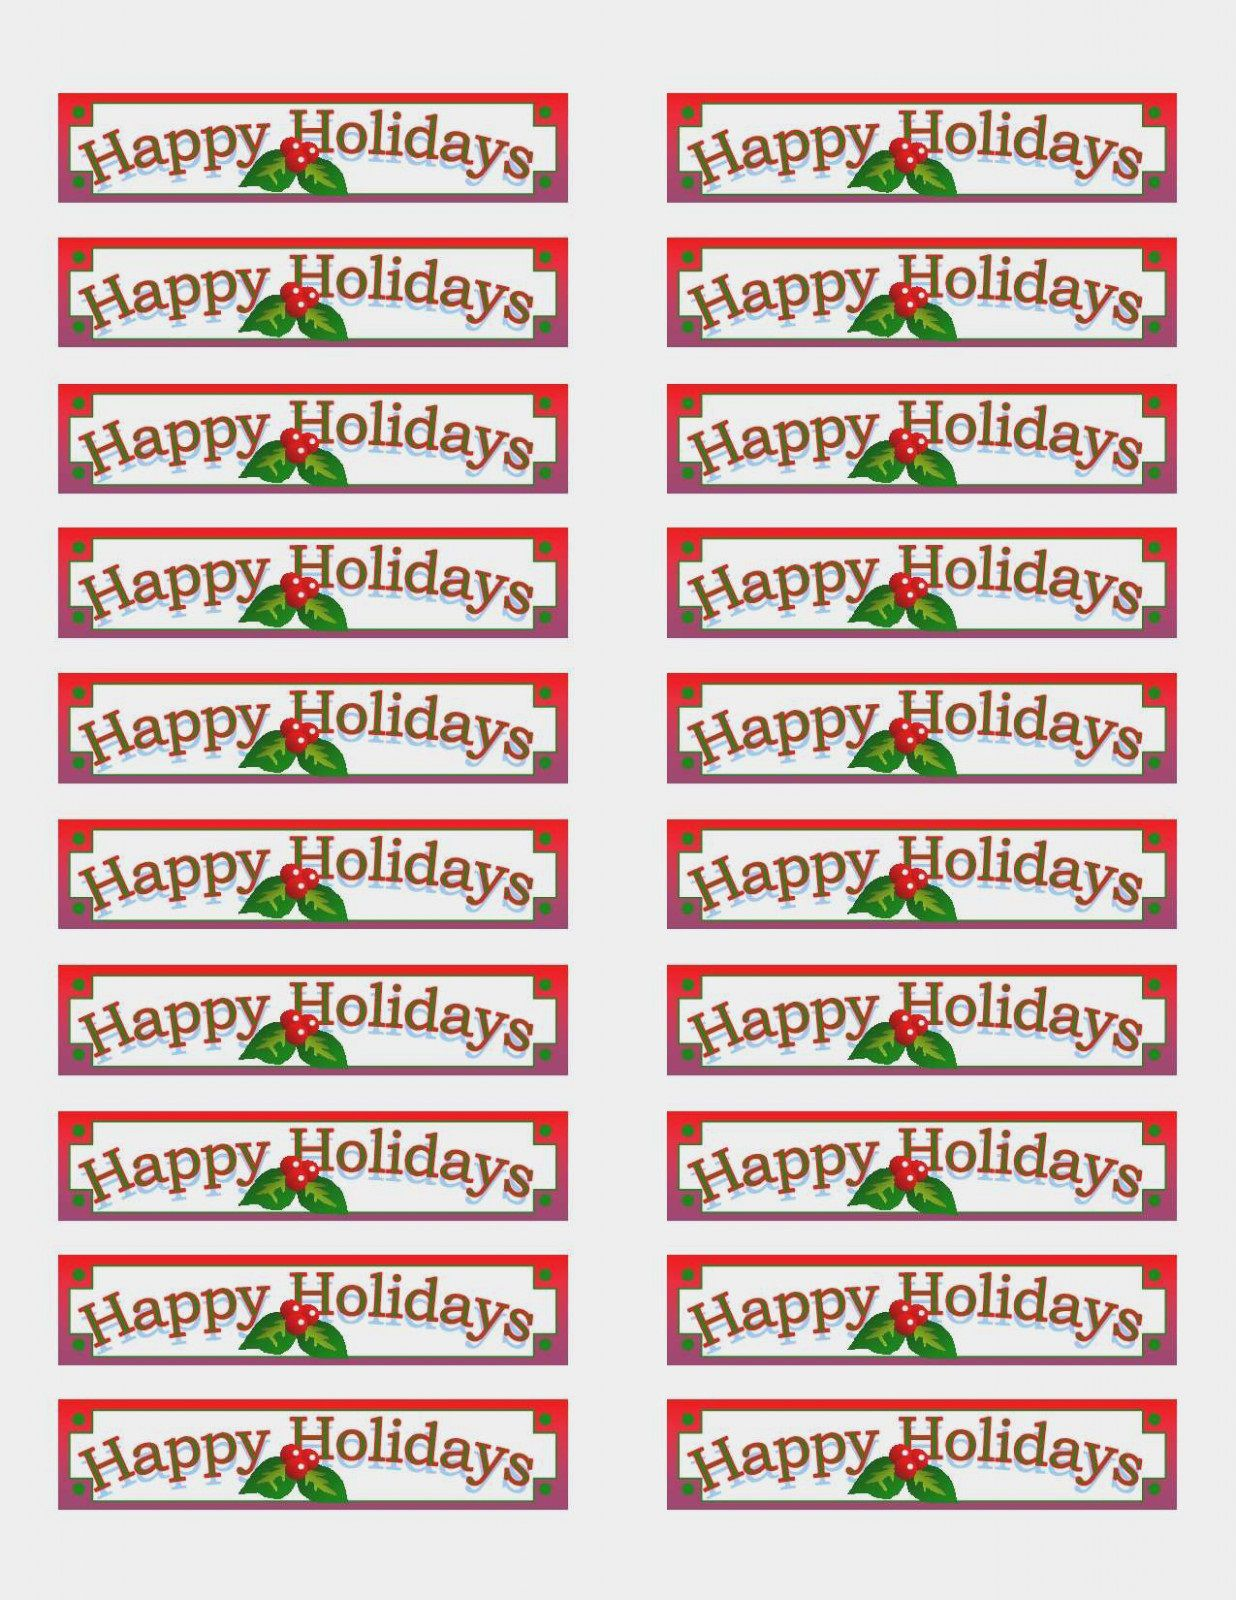 004 Archaicawful Christma Addres Label Template Example  Free Download Shipping CardFull